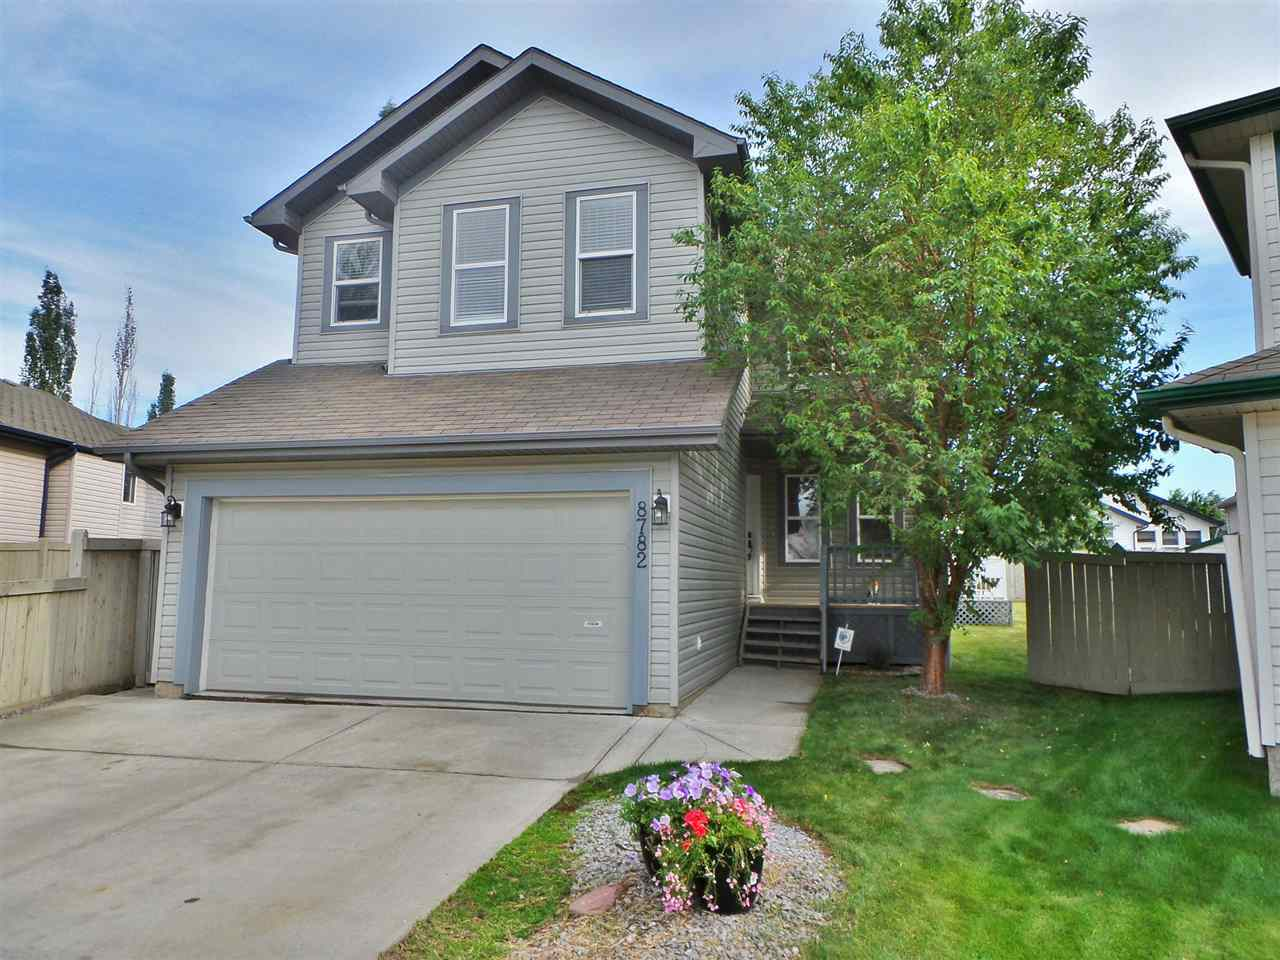 Welcome to 8782-5 Ave SW! A great family home located in a quite cul-de-sac!